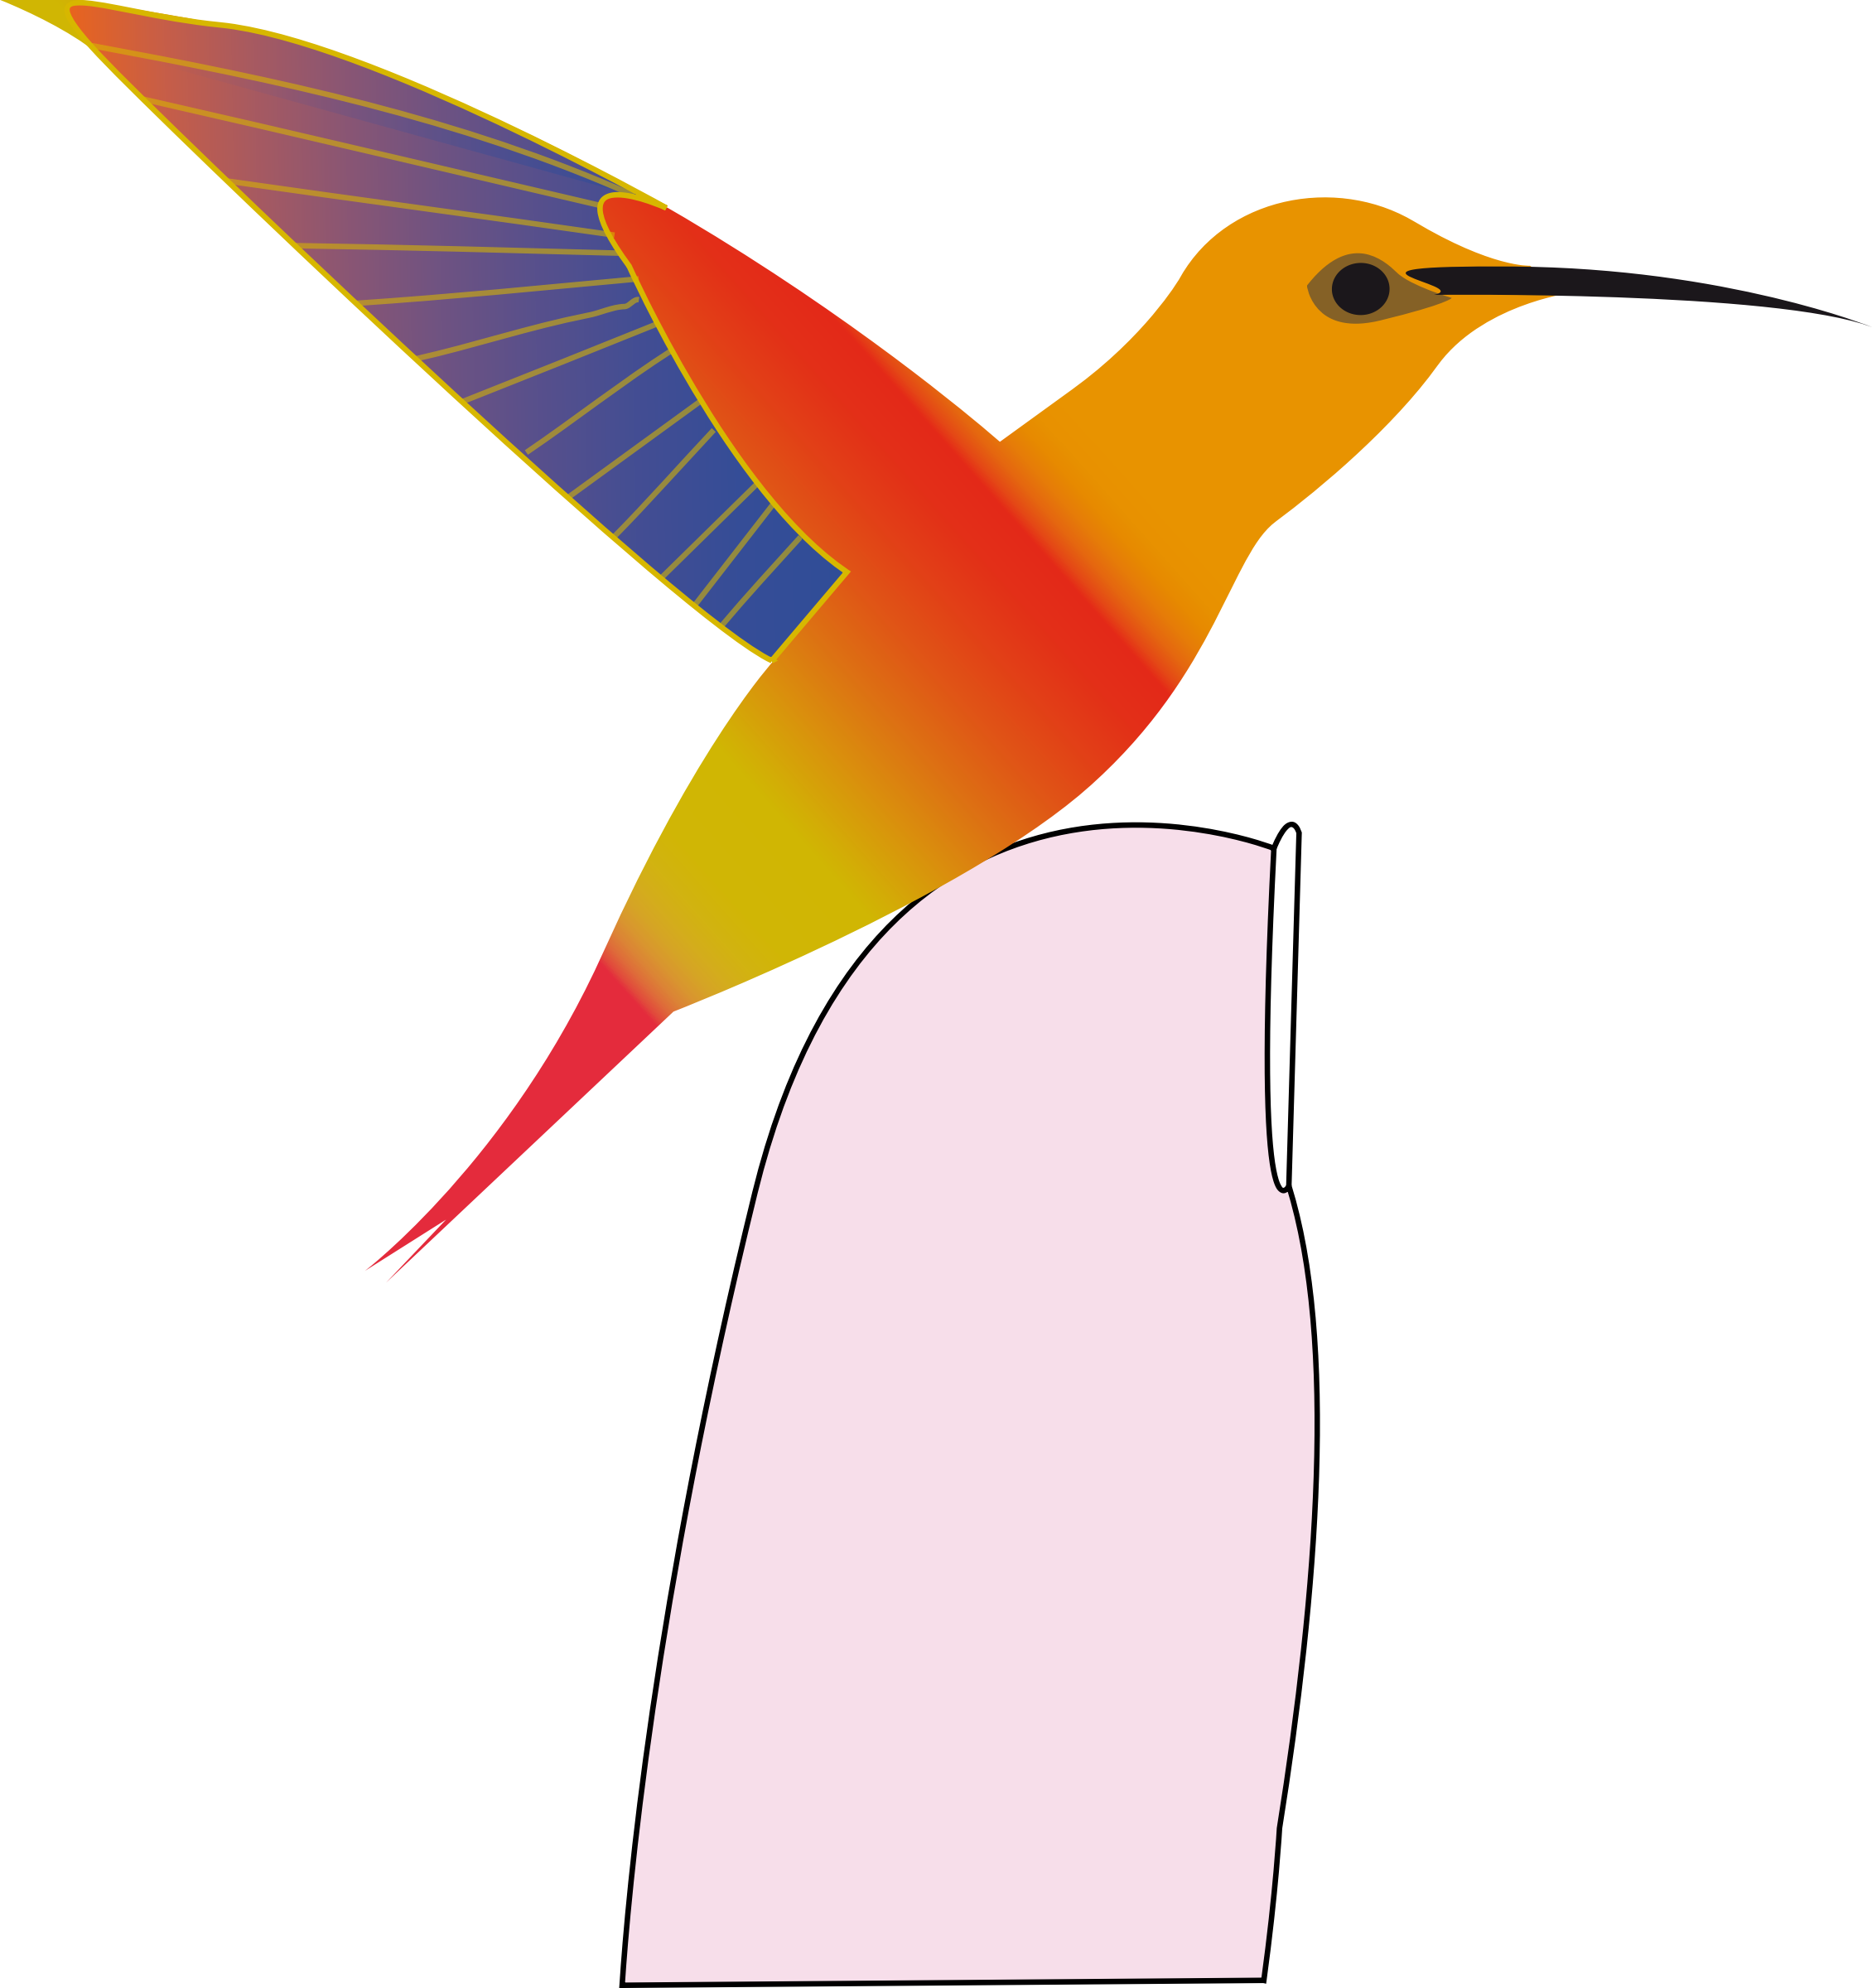 hummingbird by presquesage